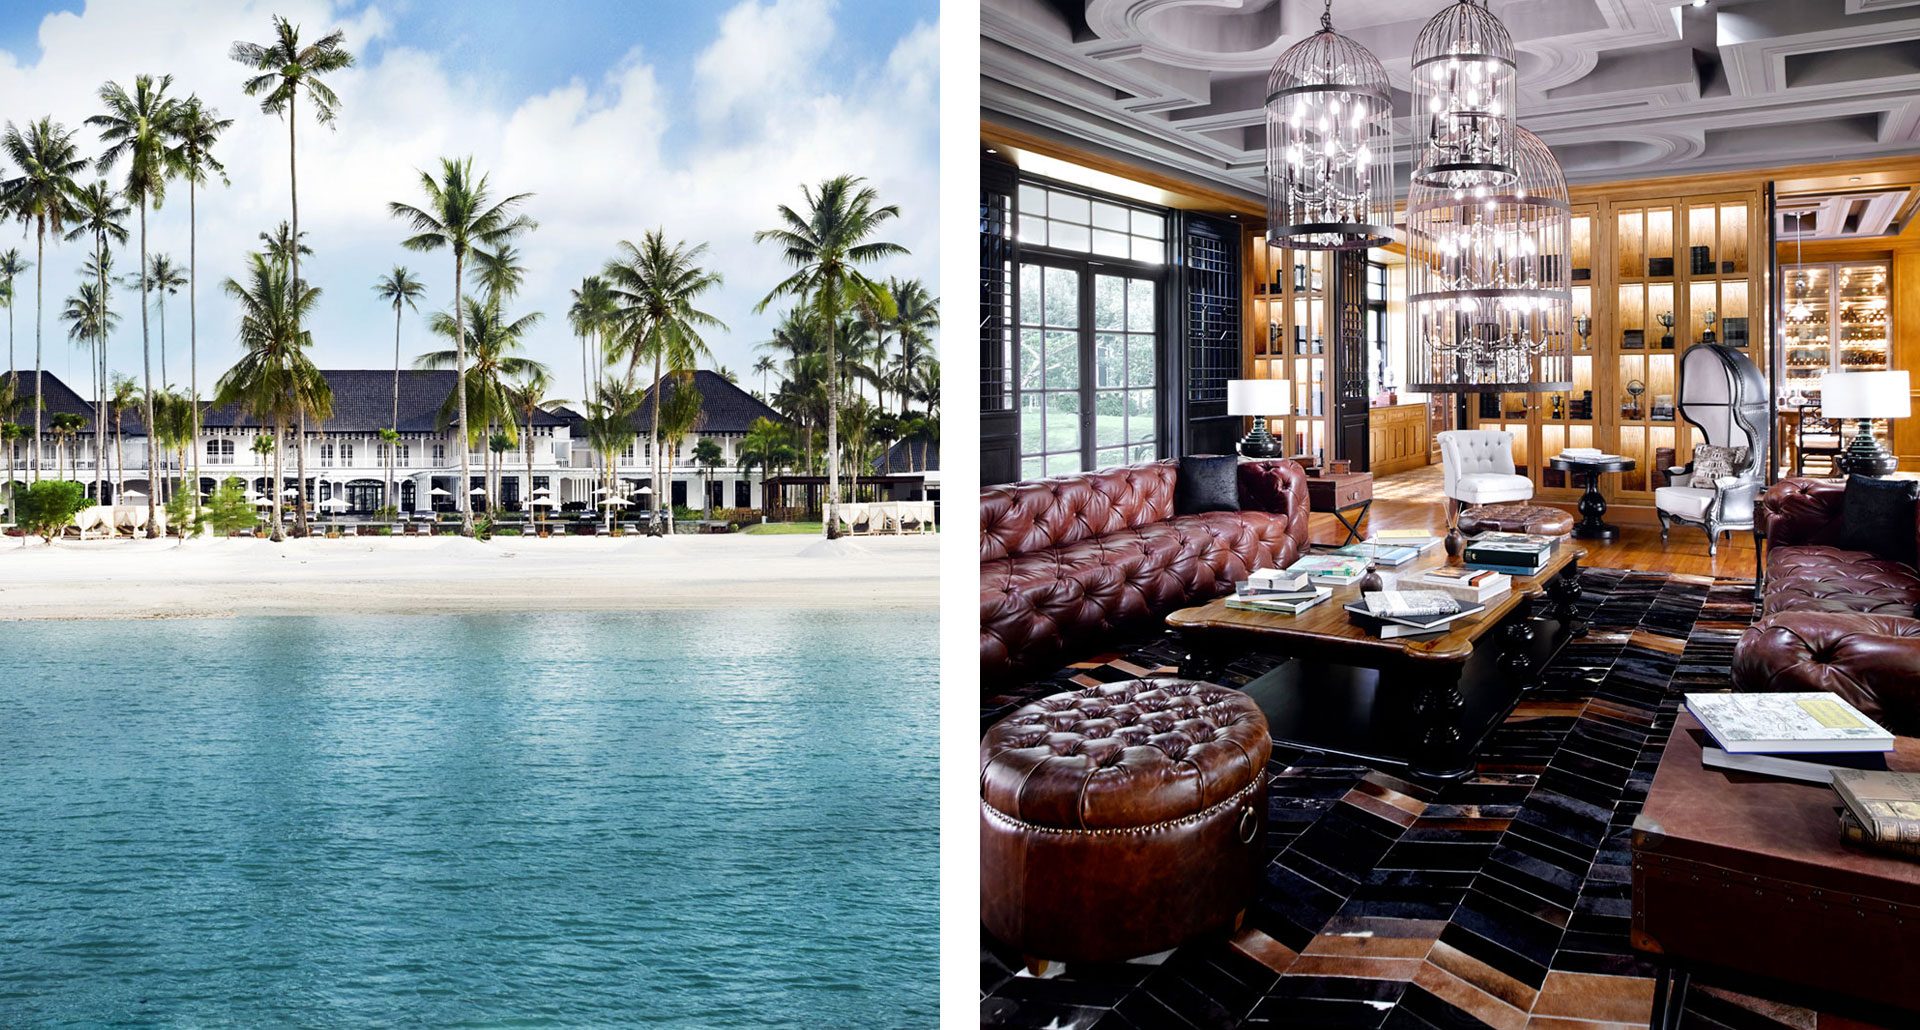 The Sanchaya - boutique hotel in Bintan